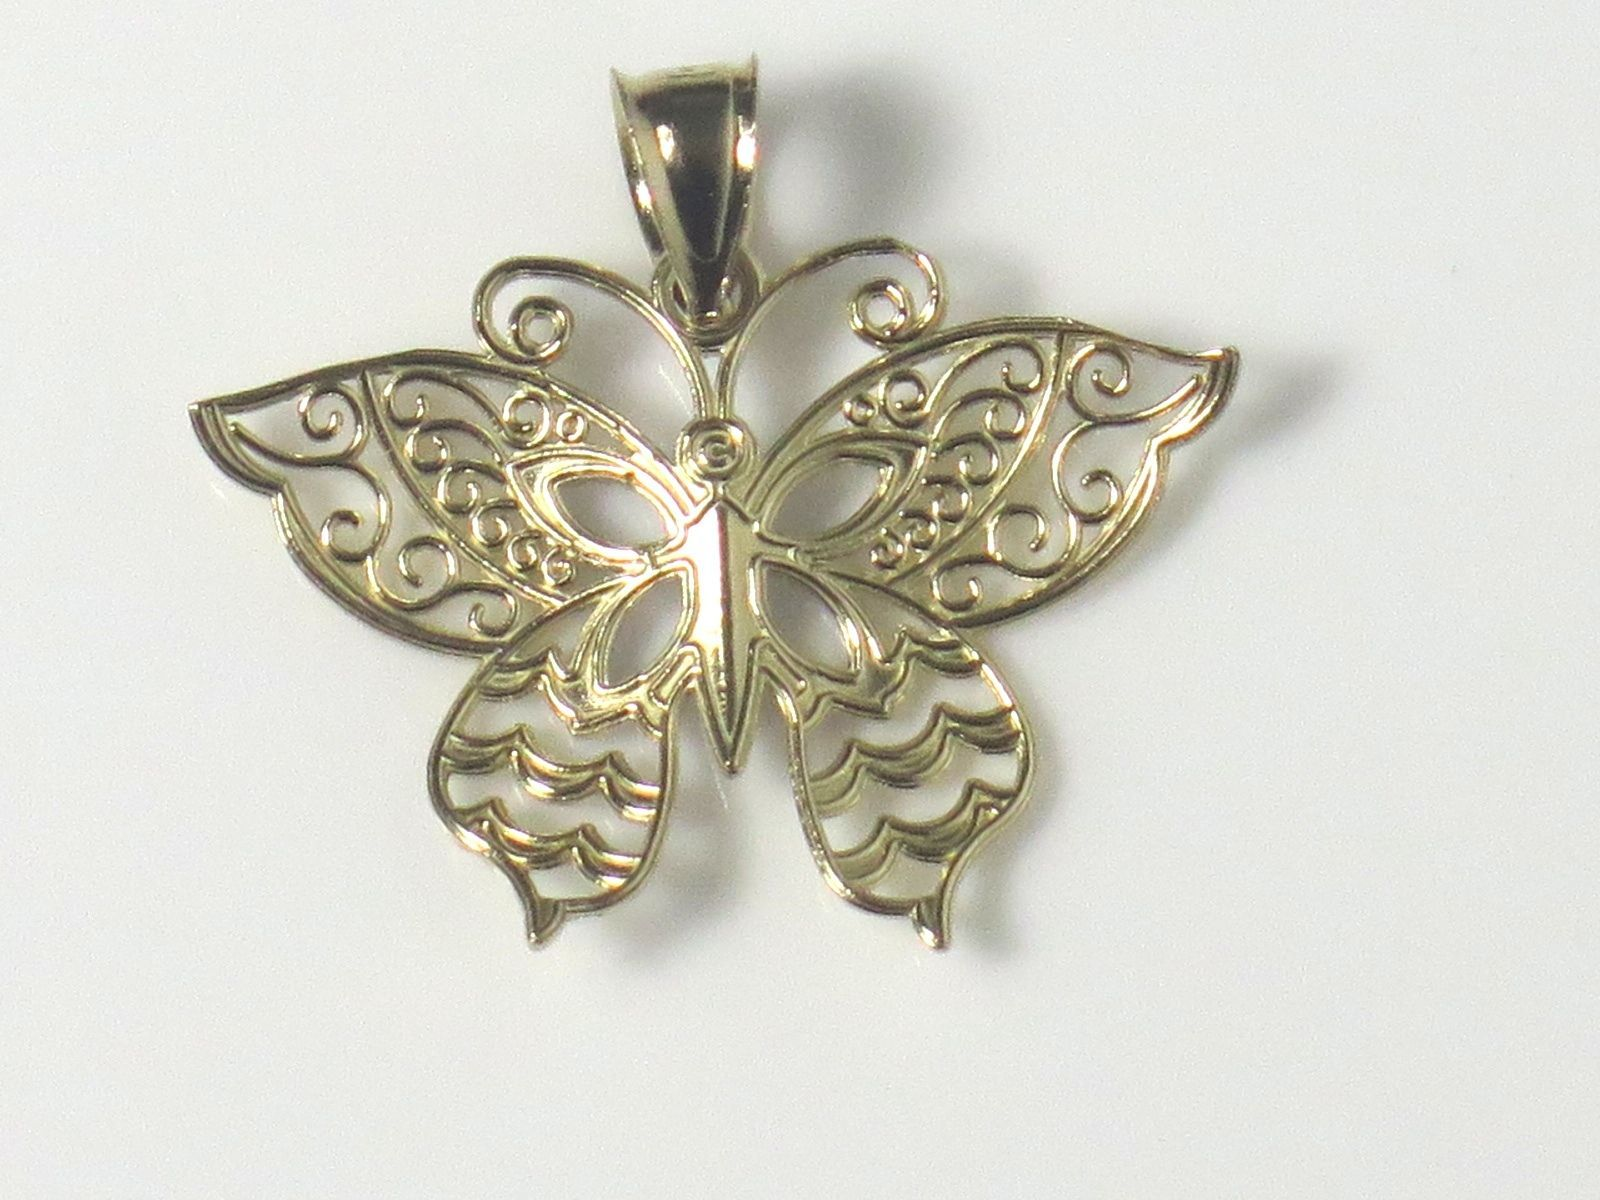 14k Two Tone Gold Fillagry Design Butterfly Charm image 4